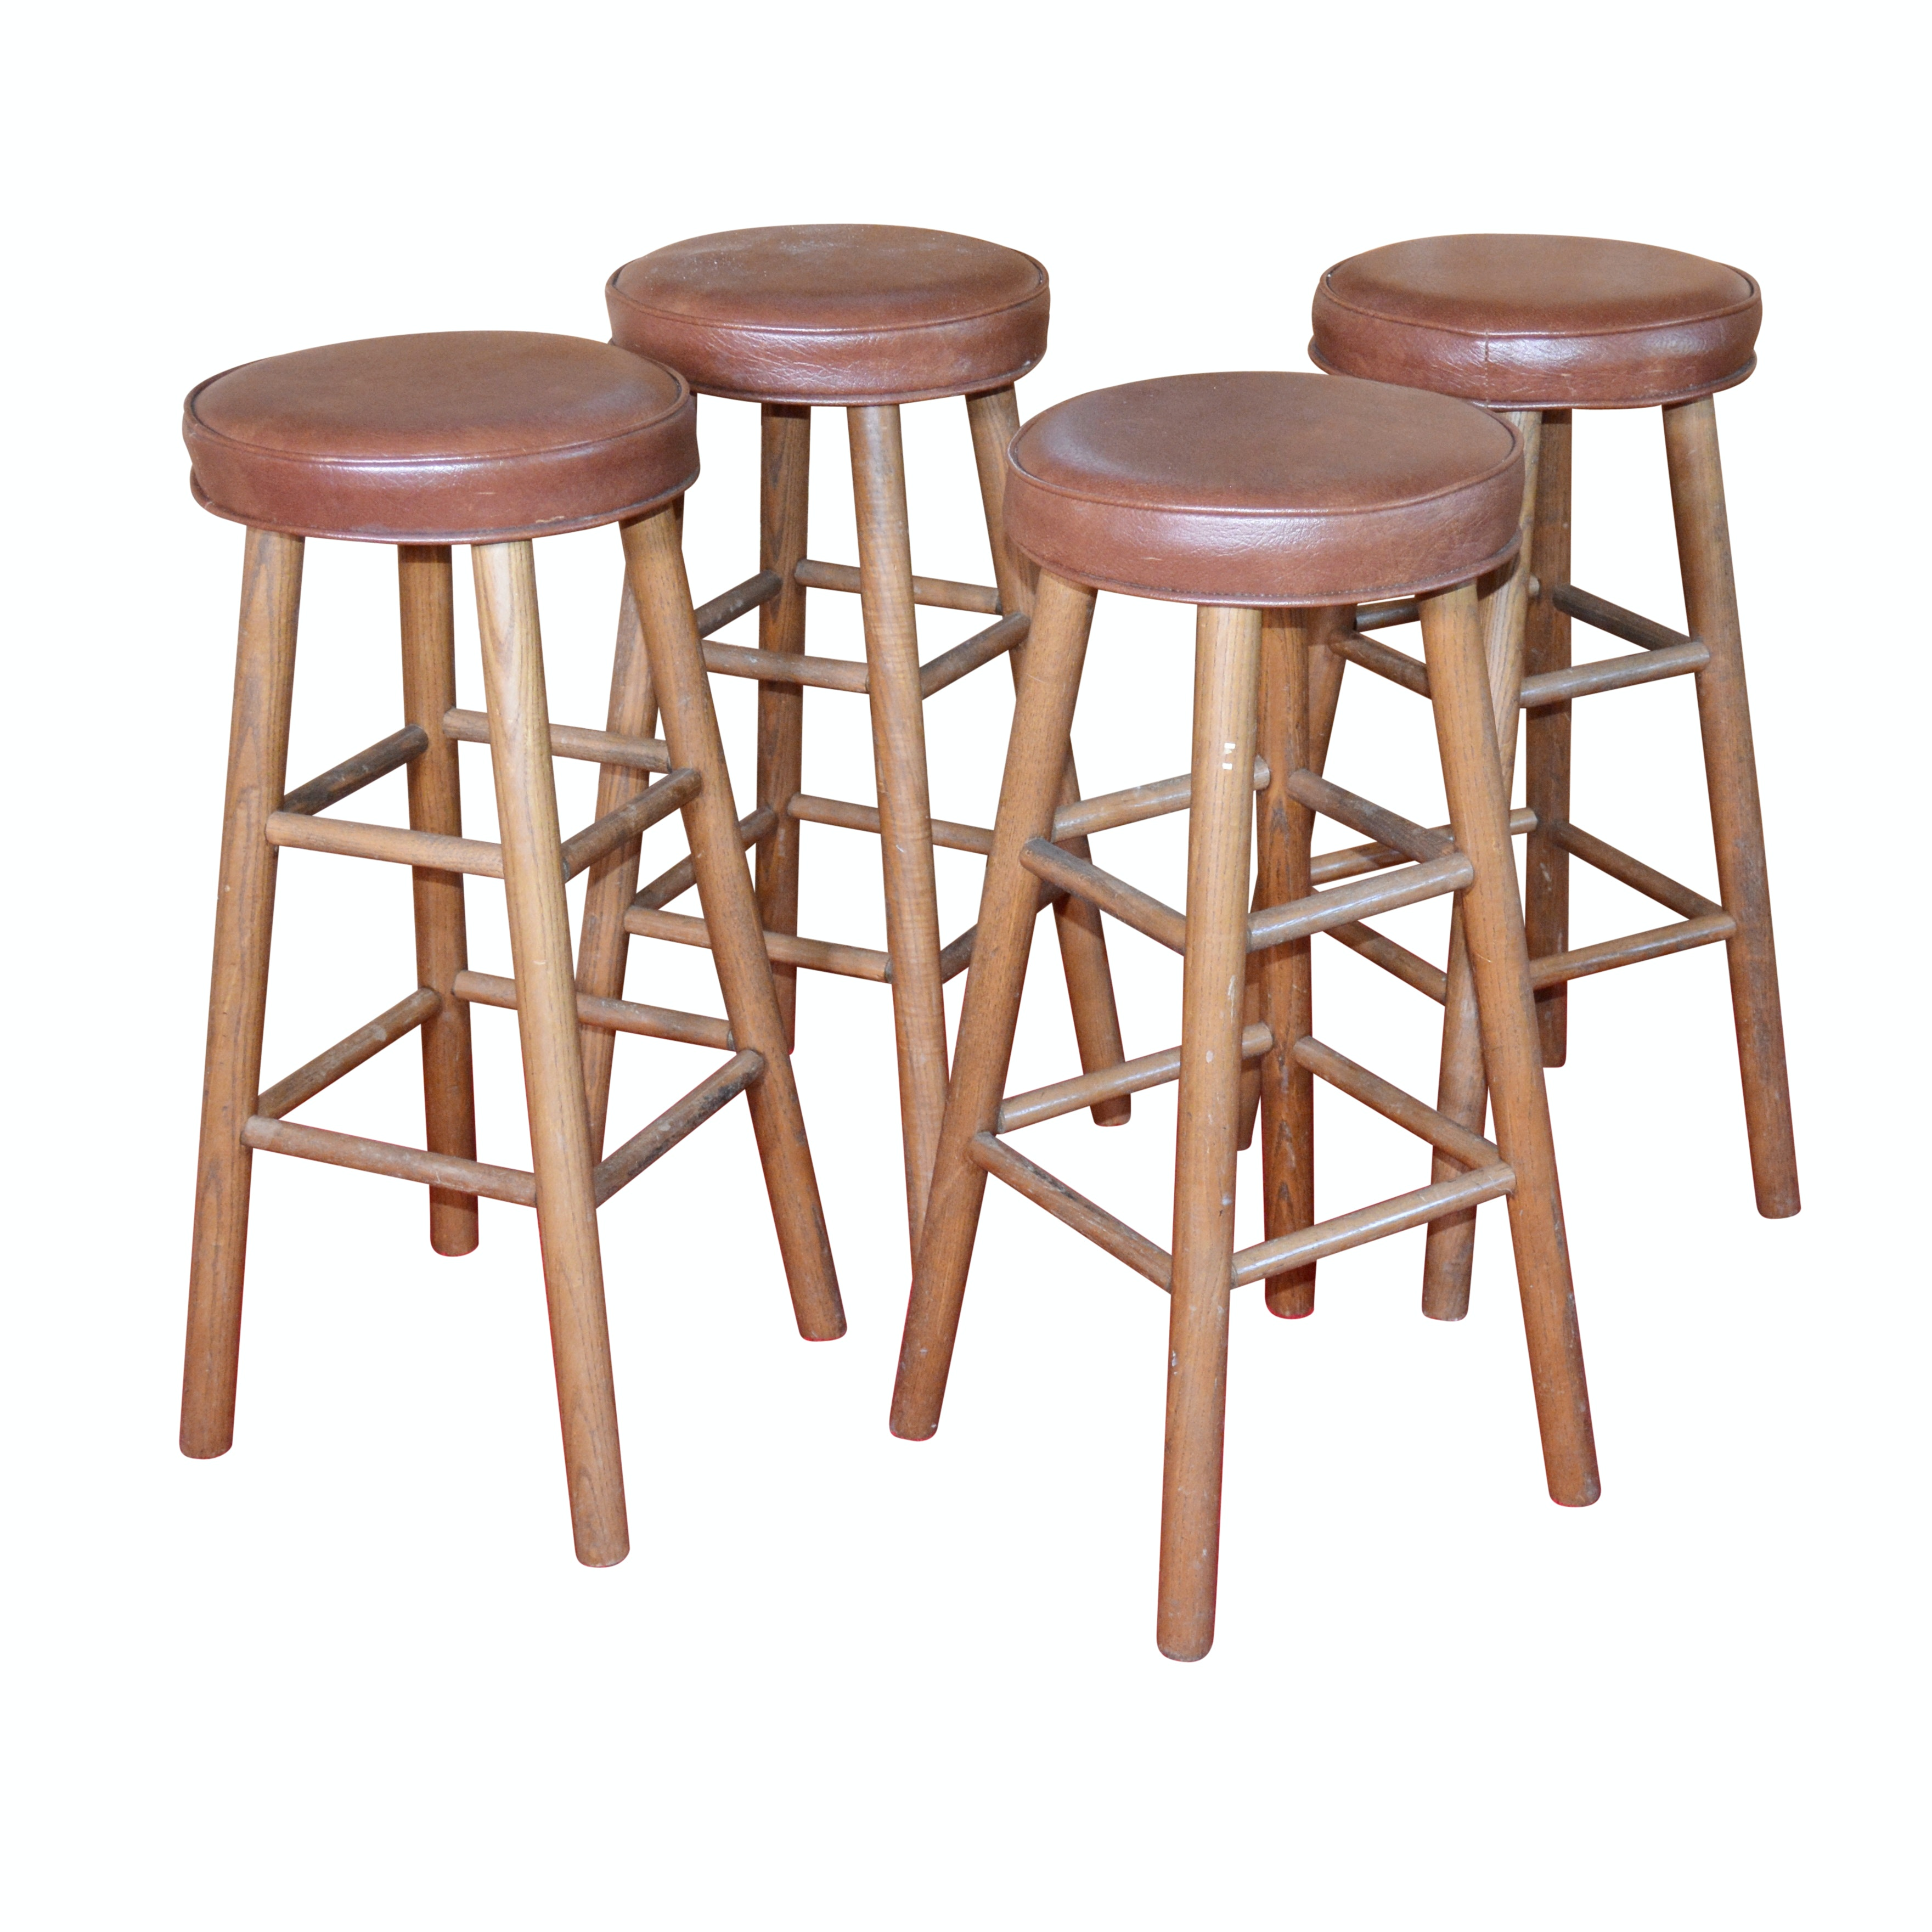 Four Oak Bar Stools by Central Chair Co., Mid-20th Century